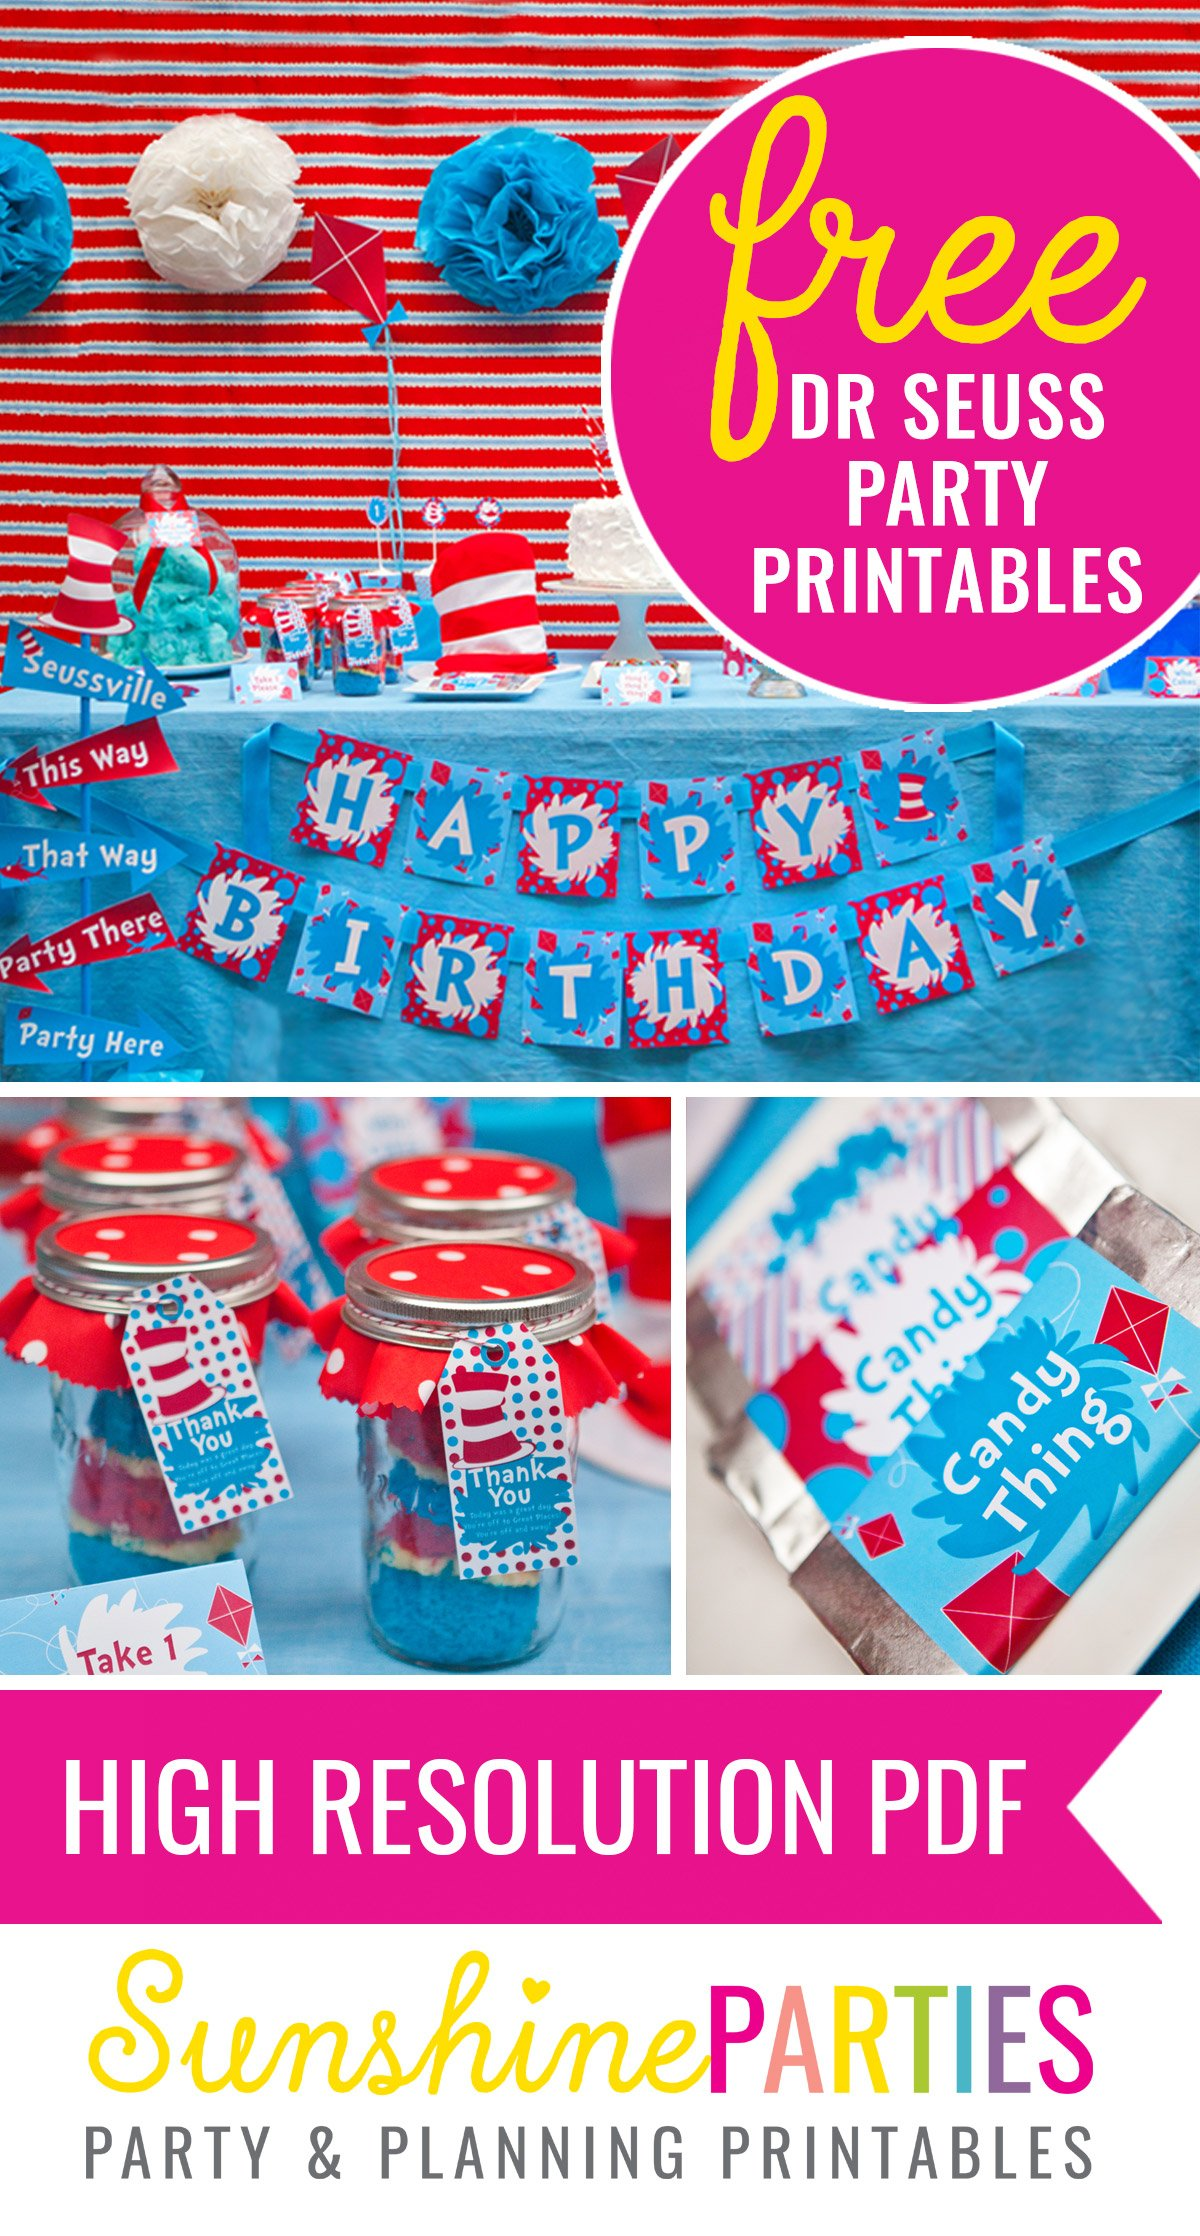 Free Dr Seuss Party Printables